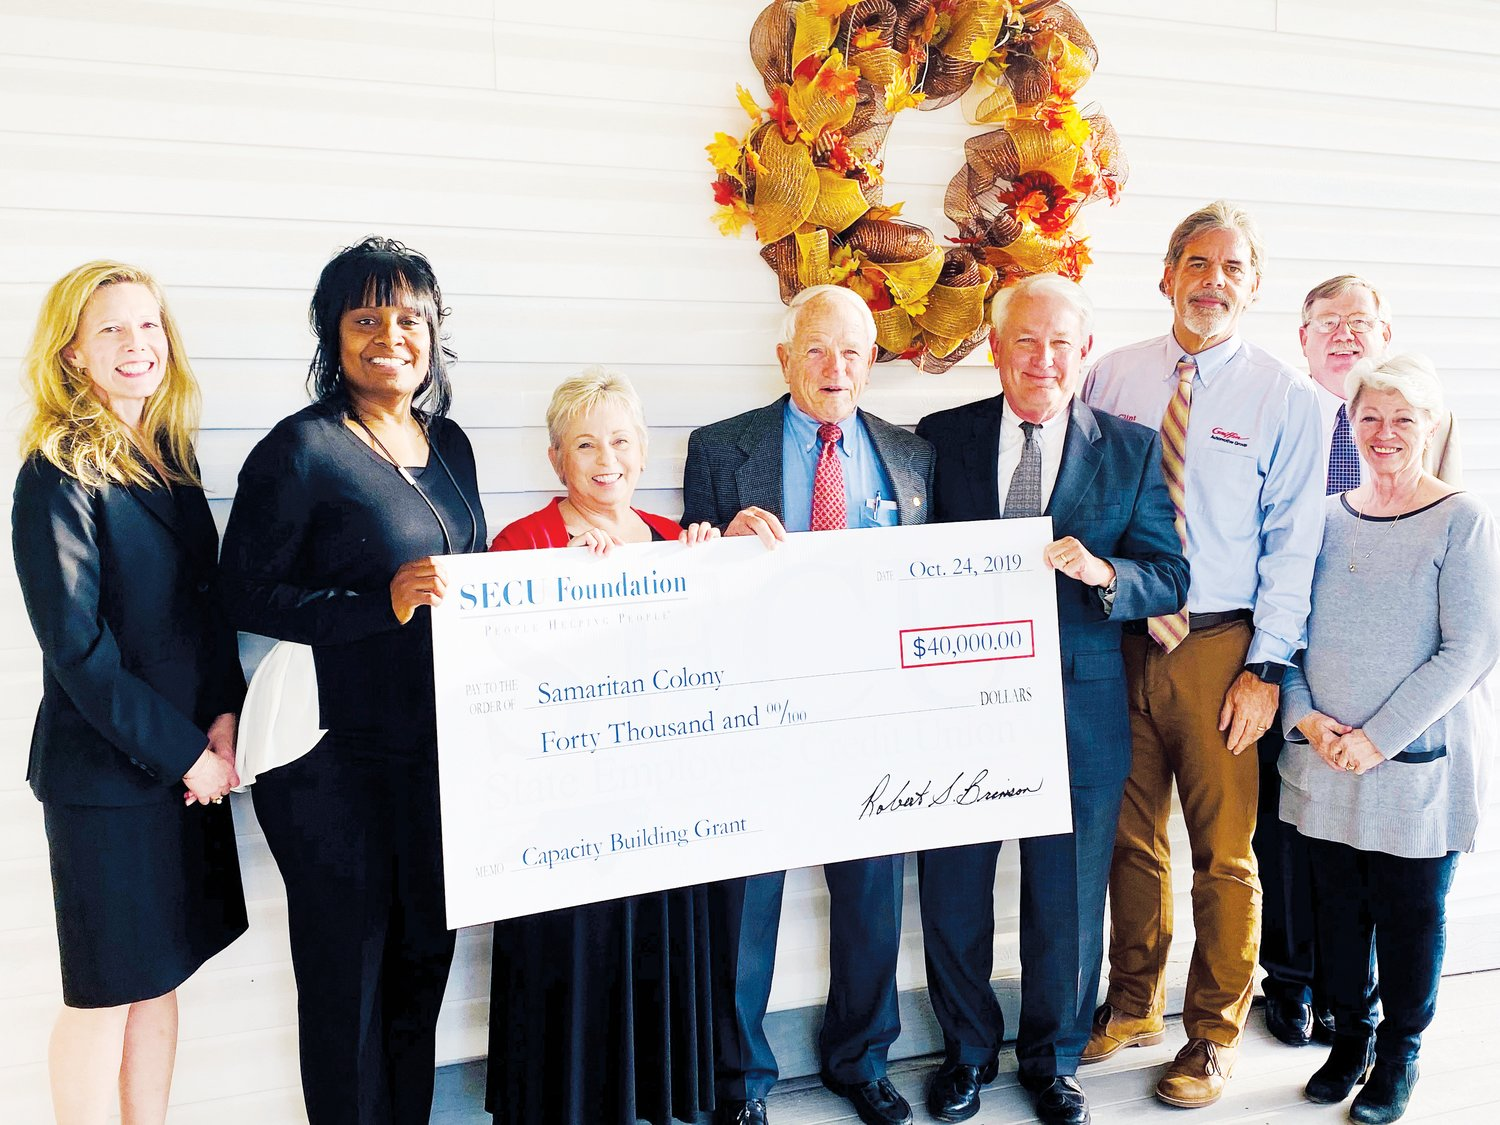 SECU Foundation representatives, including SECU Foundation Board Chair Bob Brinson (pictured fourth from the right), present a ceremonial capacity building grant check to Samaritan Colony officials.